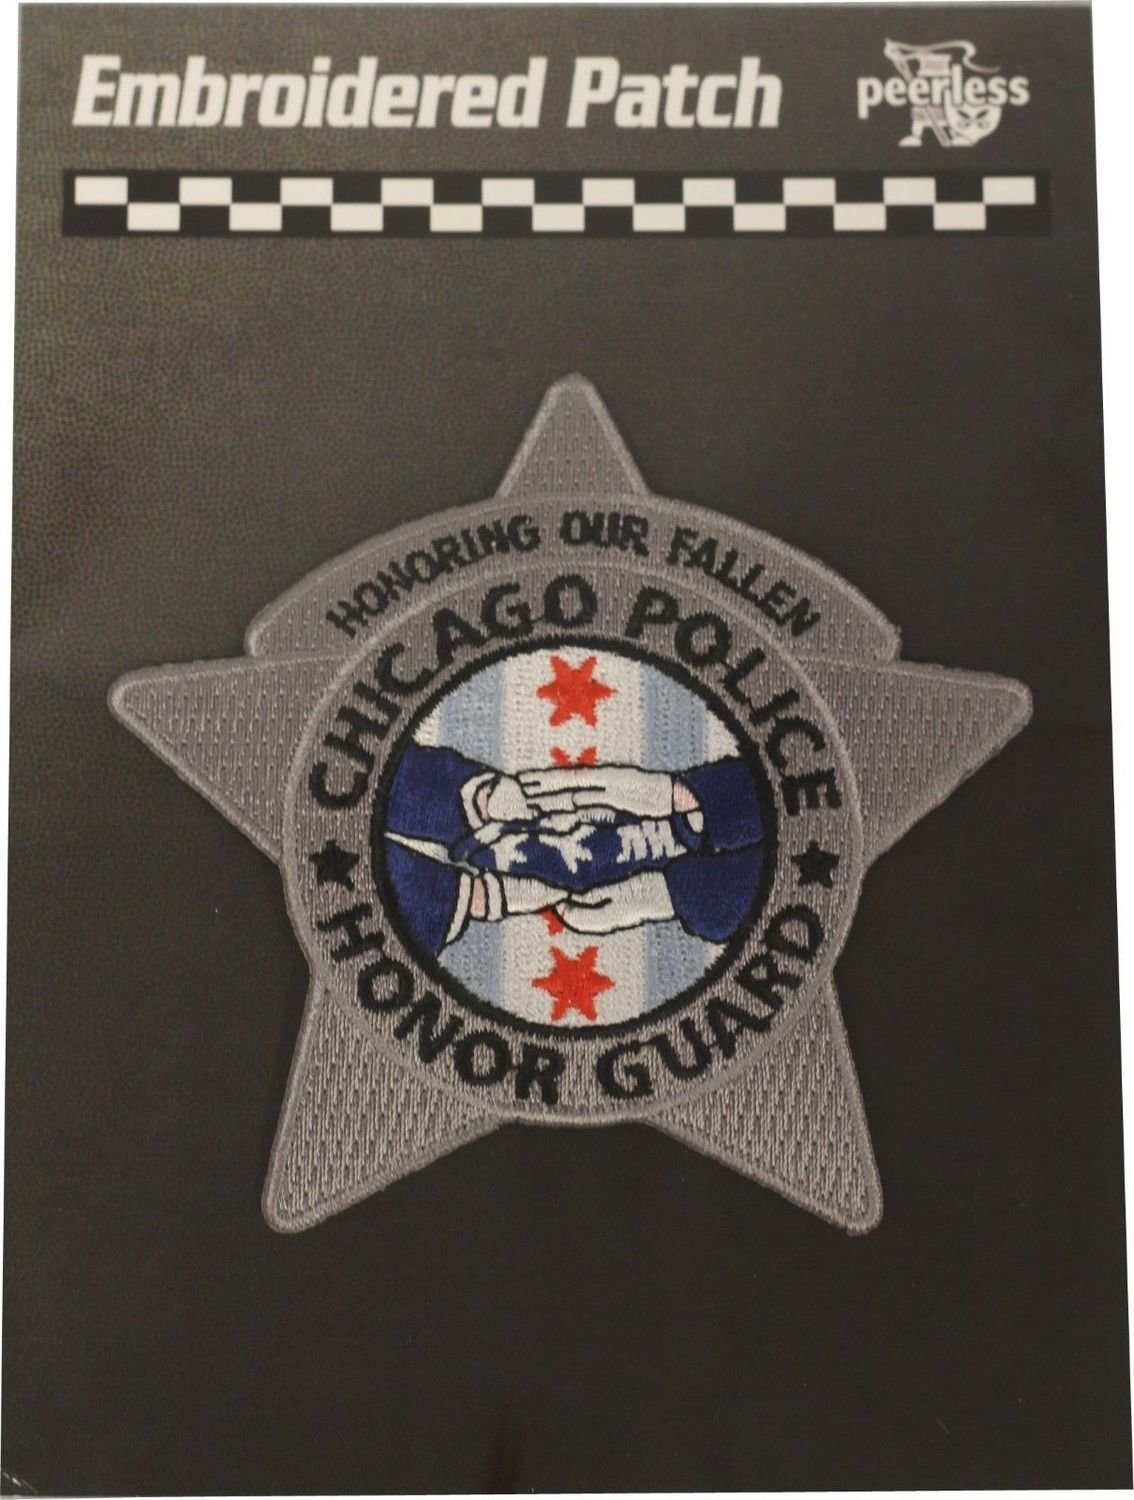 Chicago Police Honor Guard Star Patch